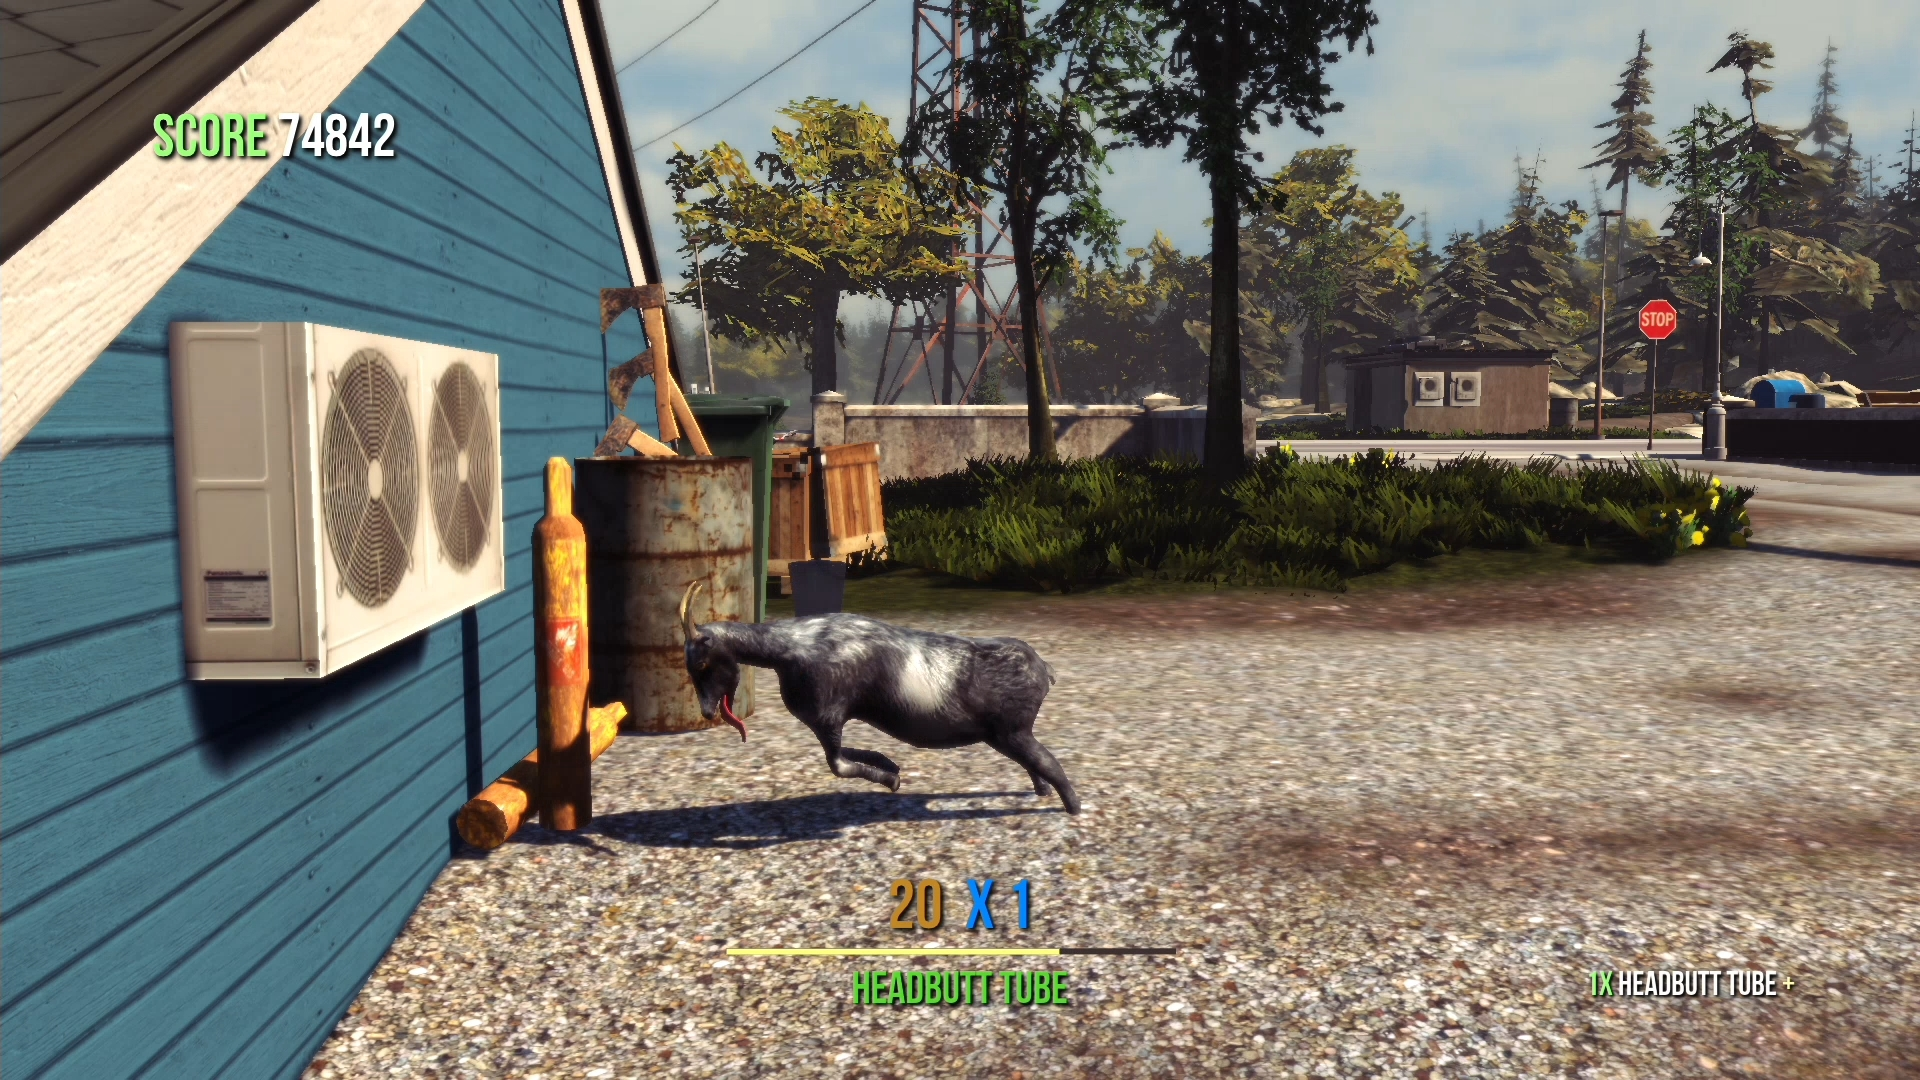 Goat Simulator coming to PS4 and PS3 in August